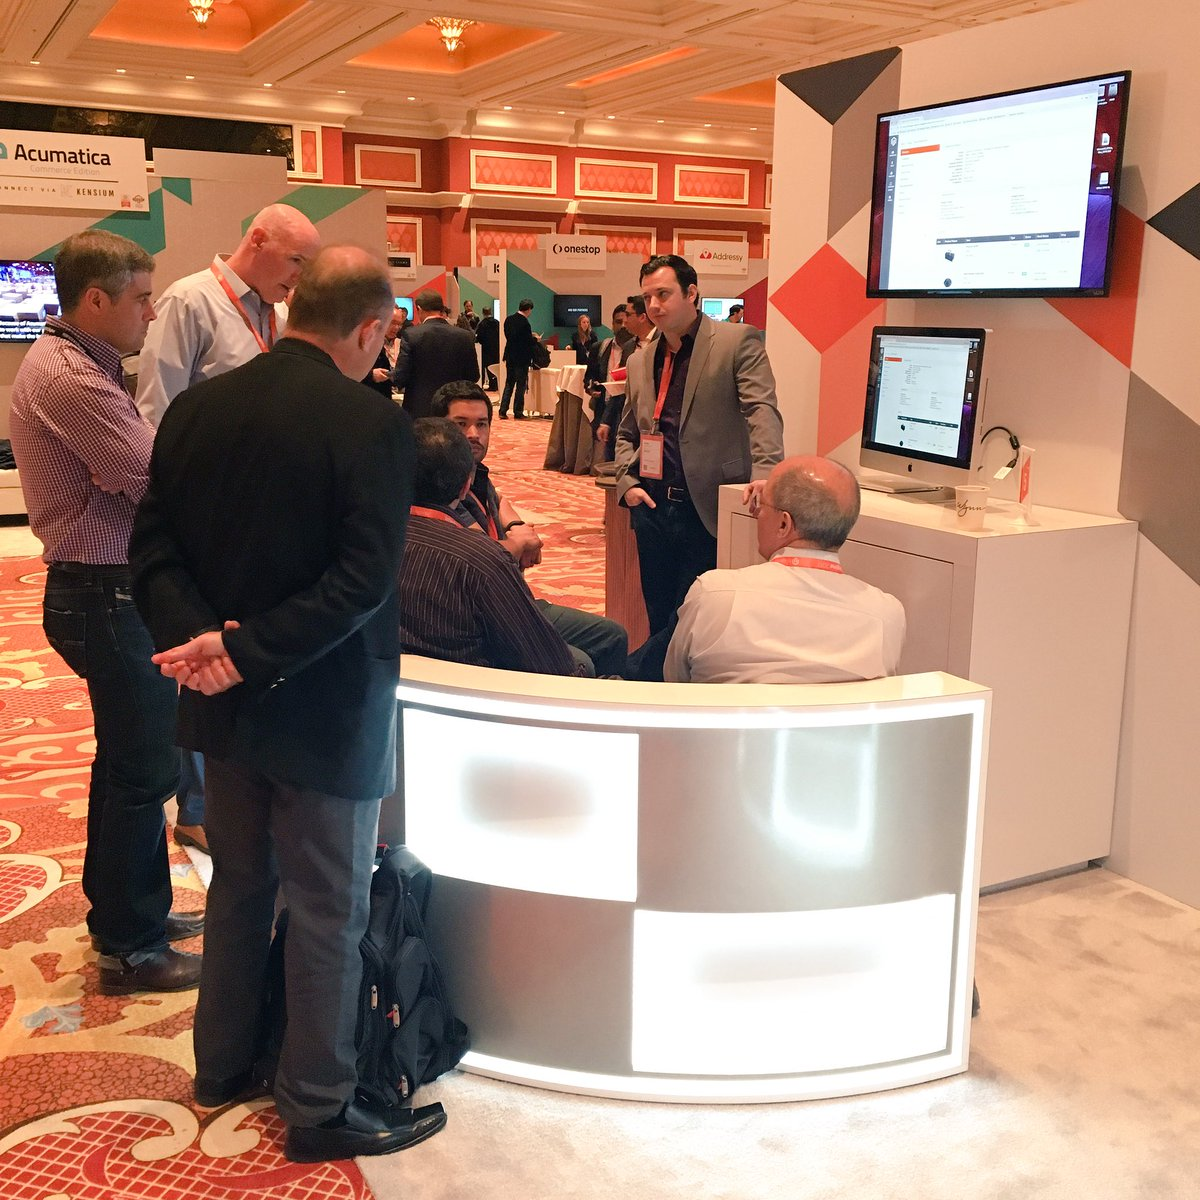 mmiller75: Lots of activity and deep product conversations happening at the @magento booth! #Magentoimagine https://t.co/XzD9PIu6zC